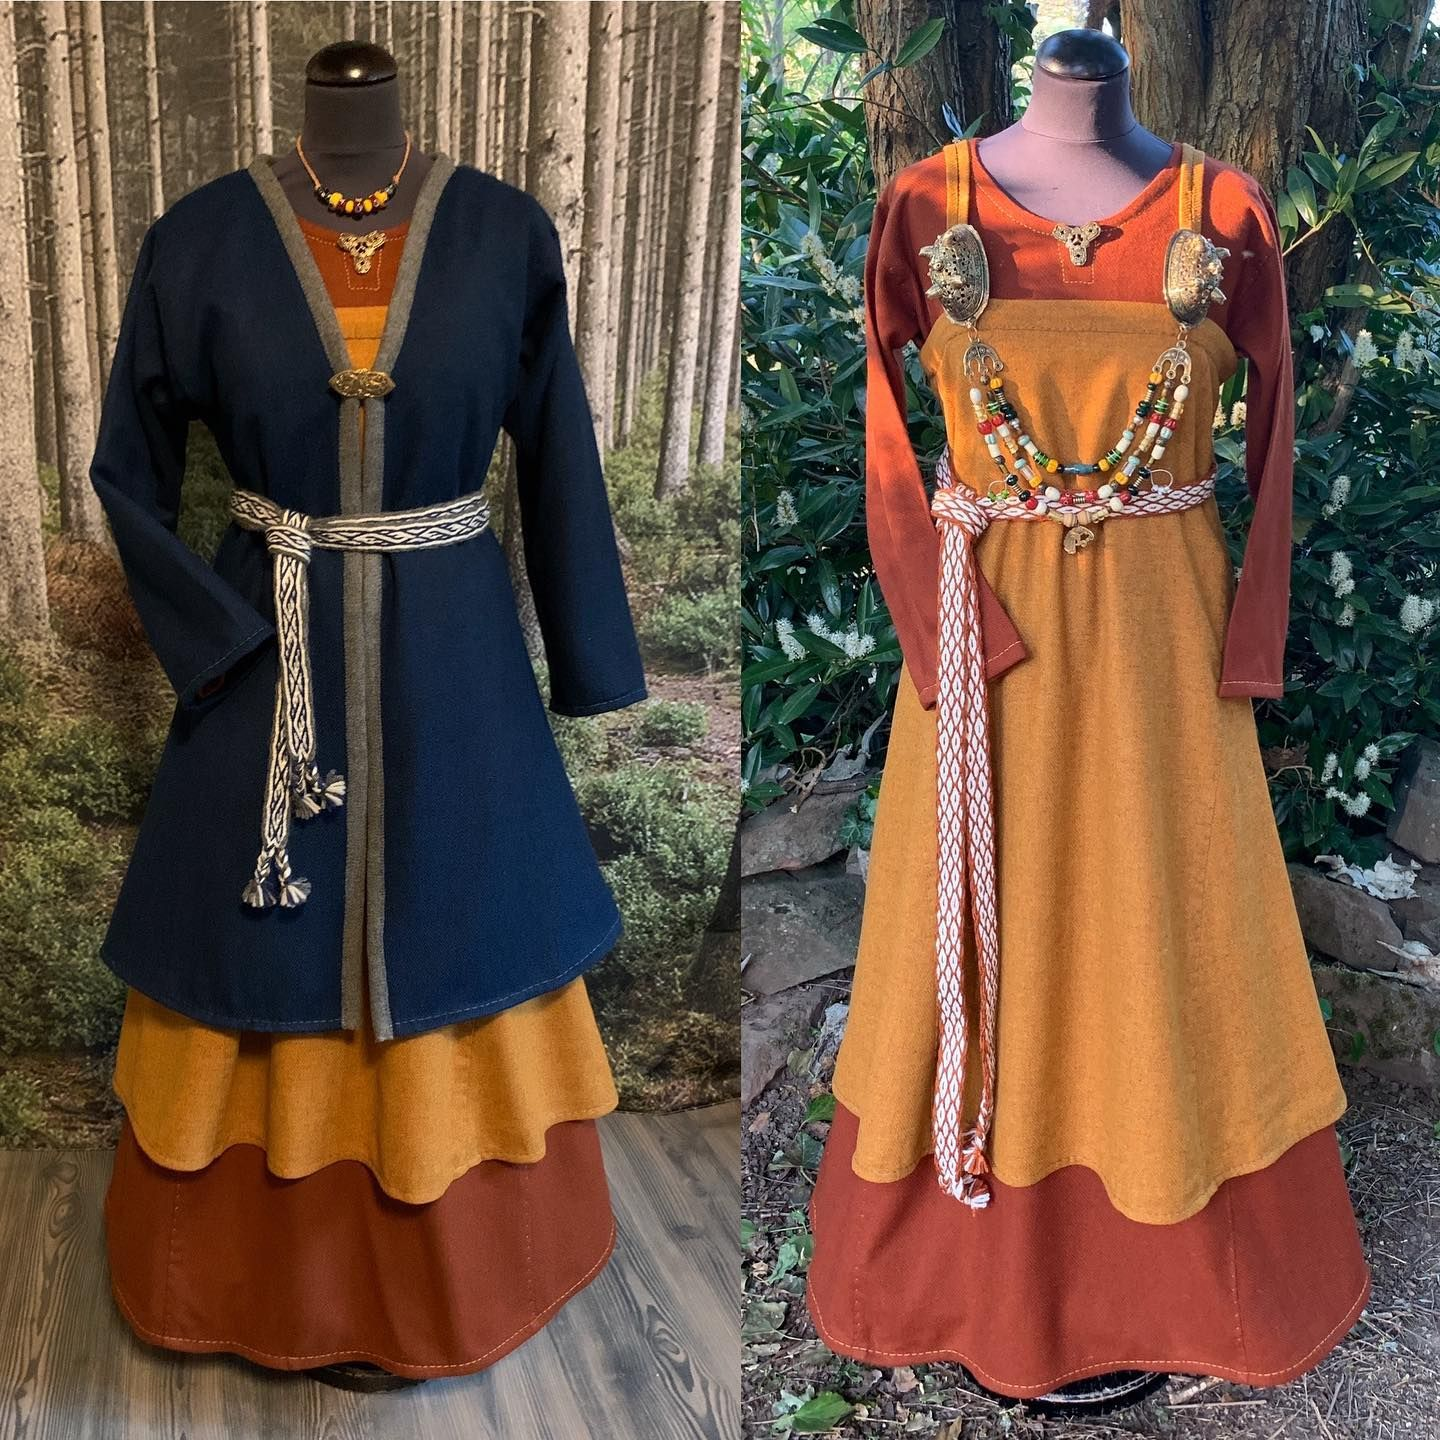 Pin By Dana Darr On Viking In 2020 Aged Clothing Viking Clothing Clothes